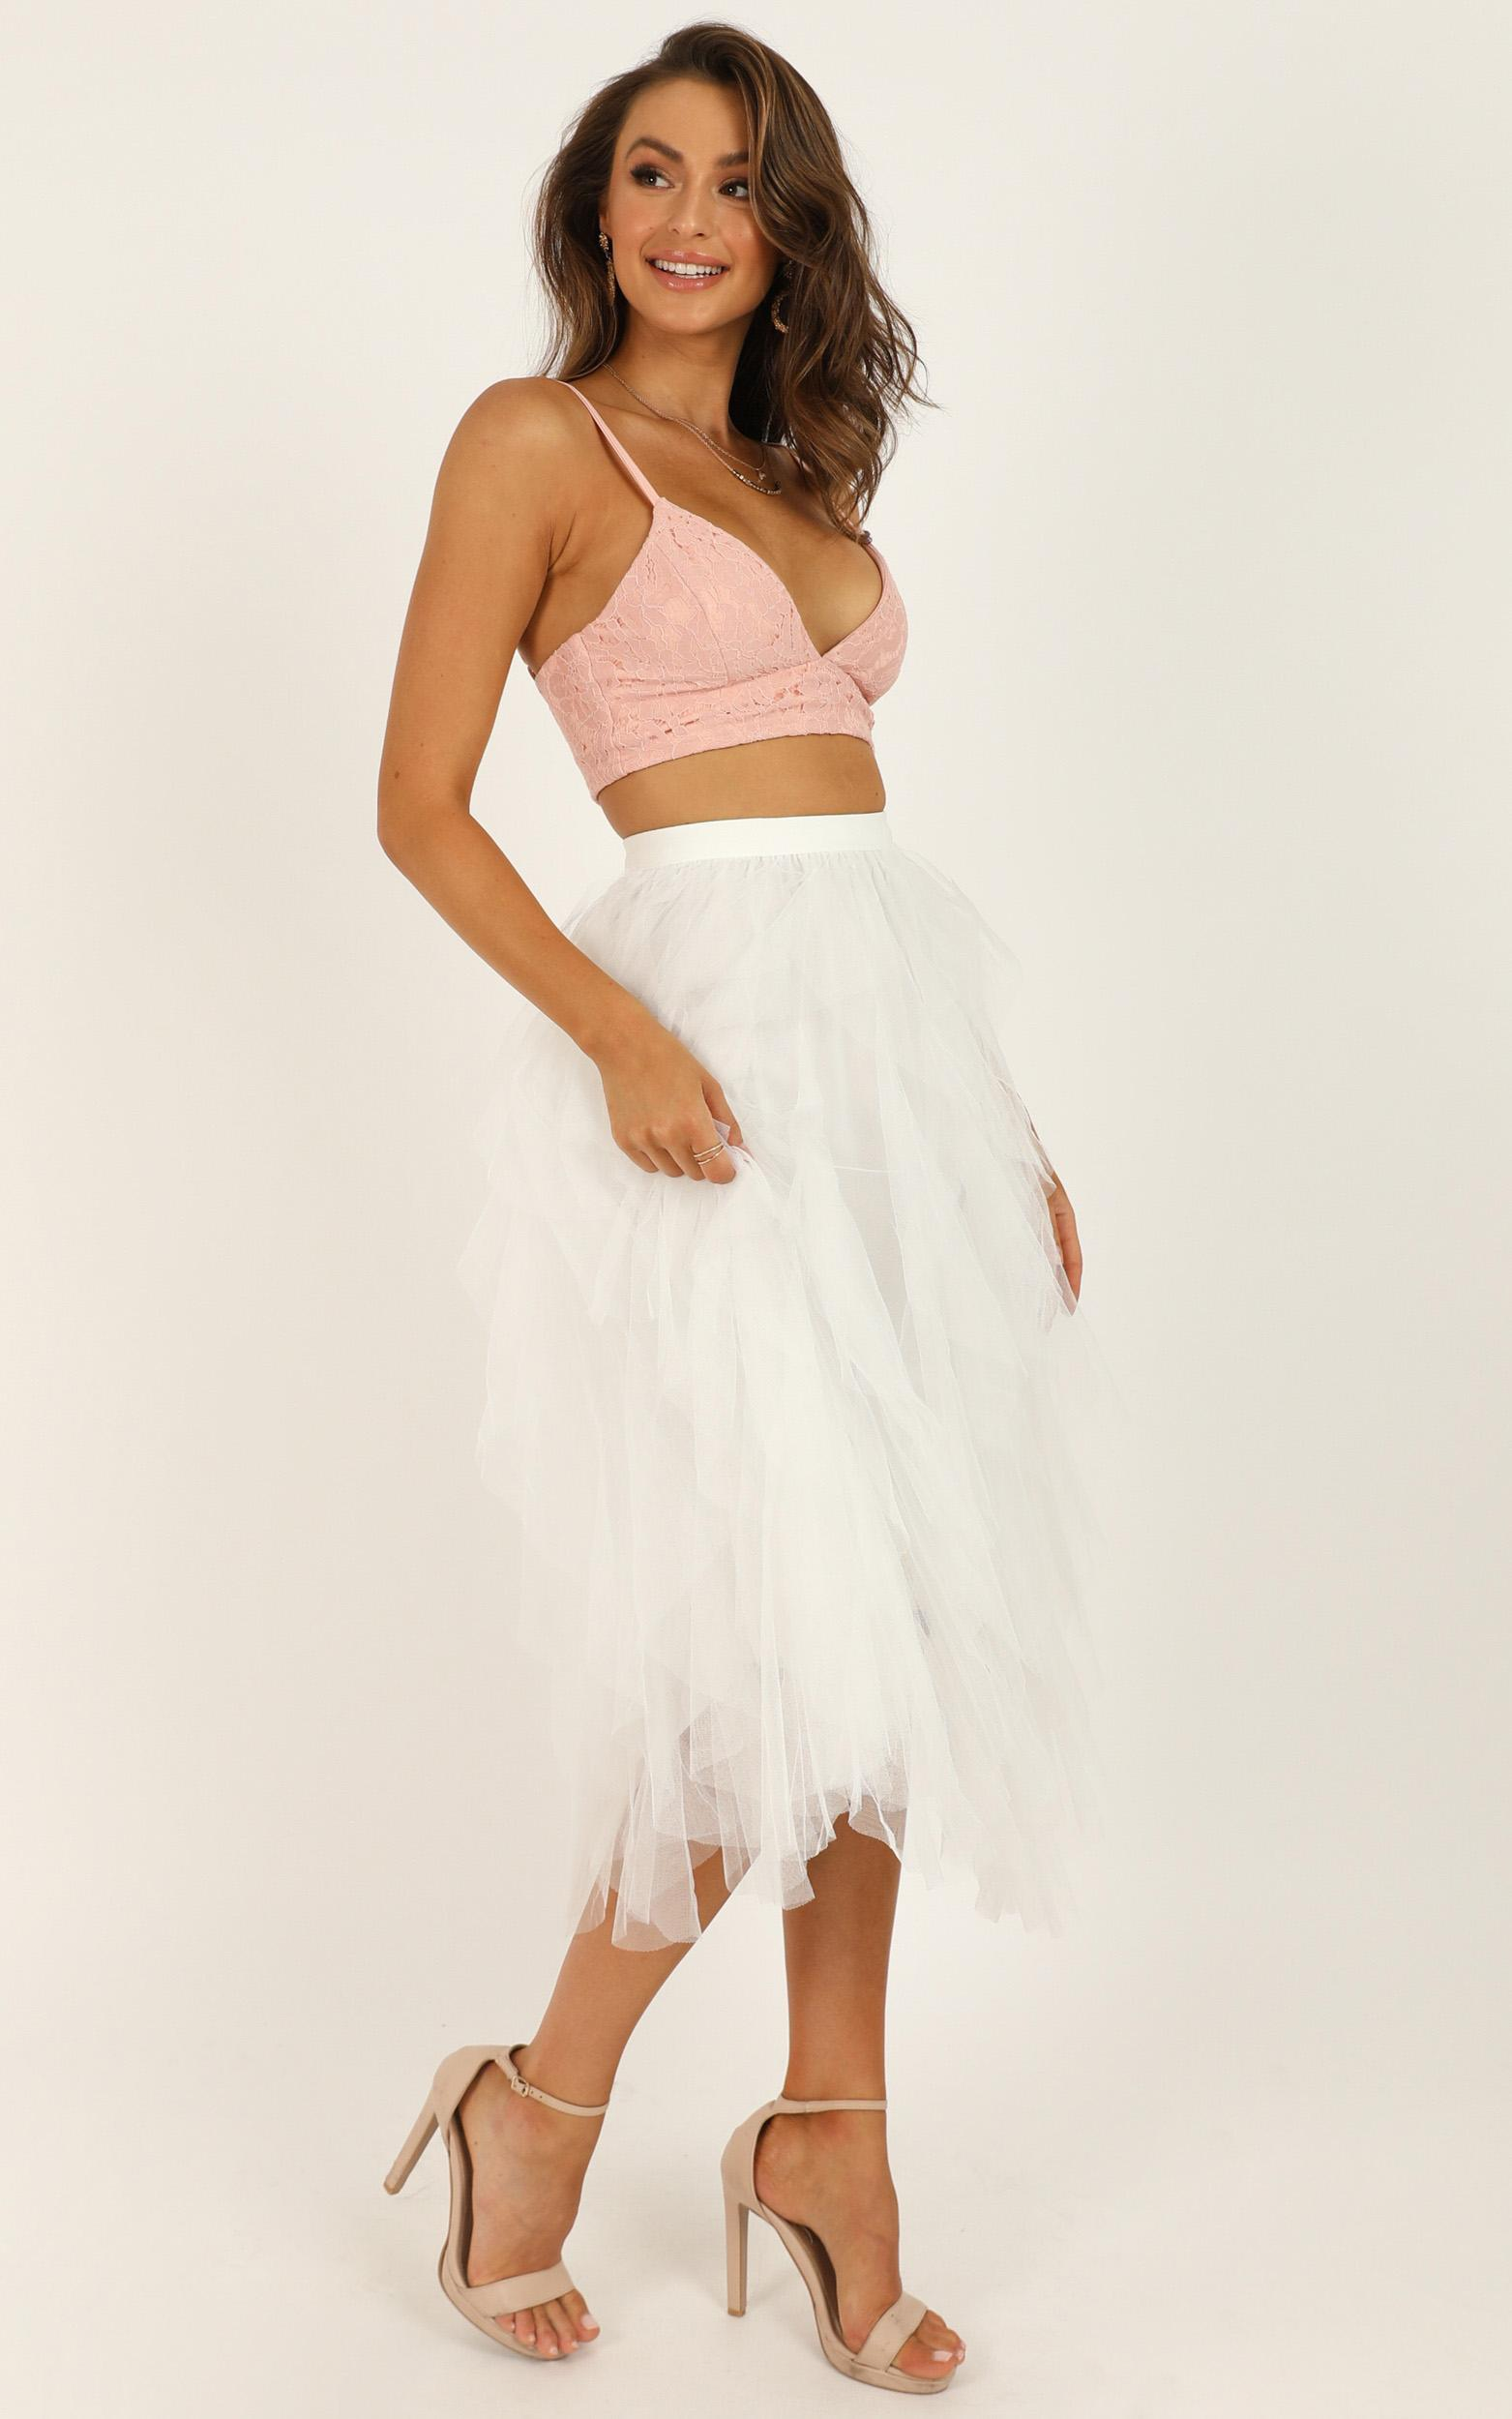 Out Of The Conversation Skirt In white - M/L, White, hi-res image number null